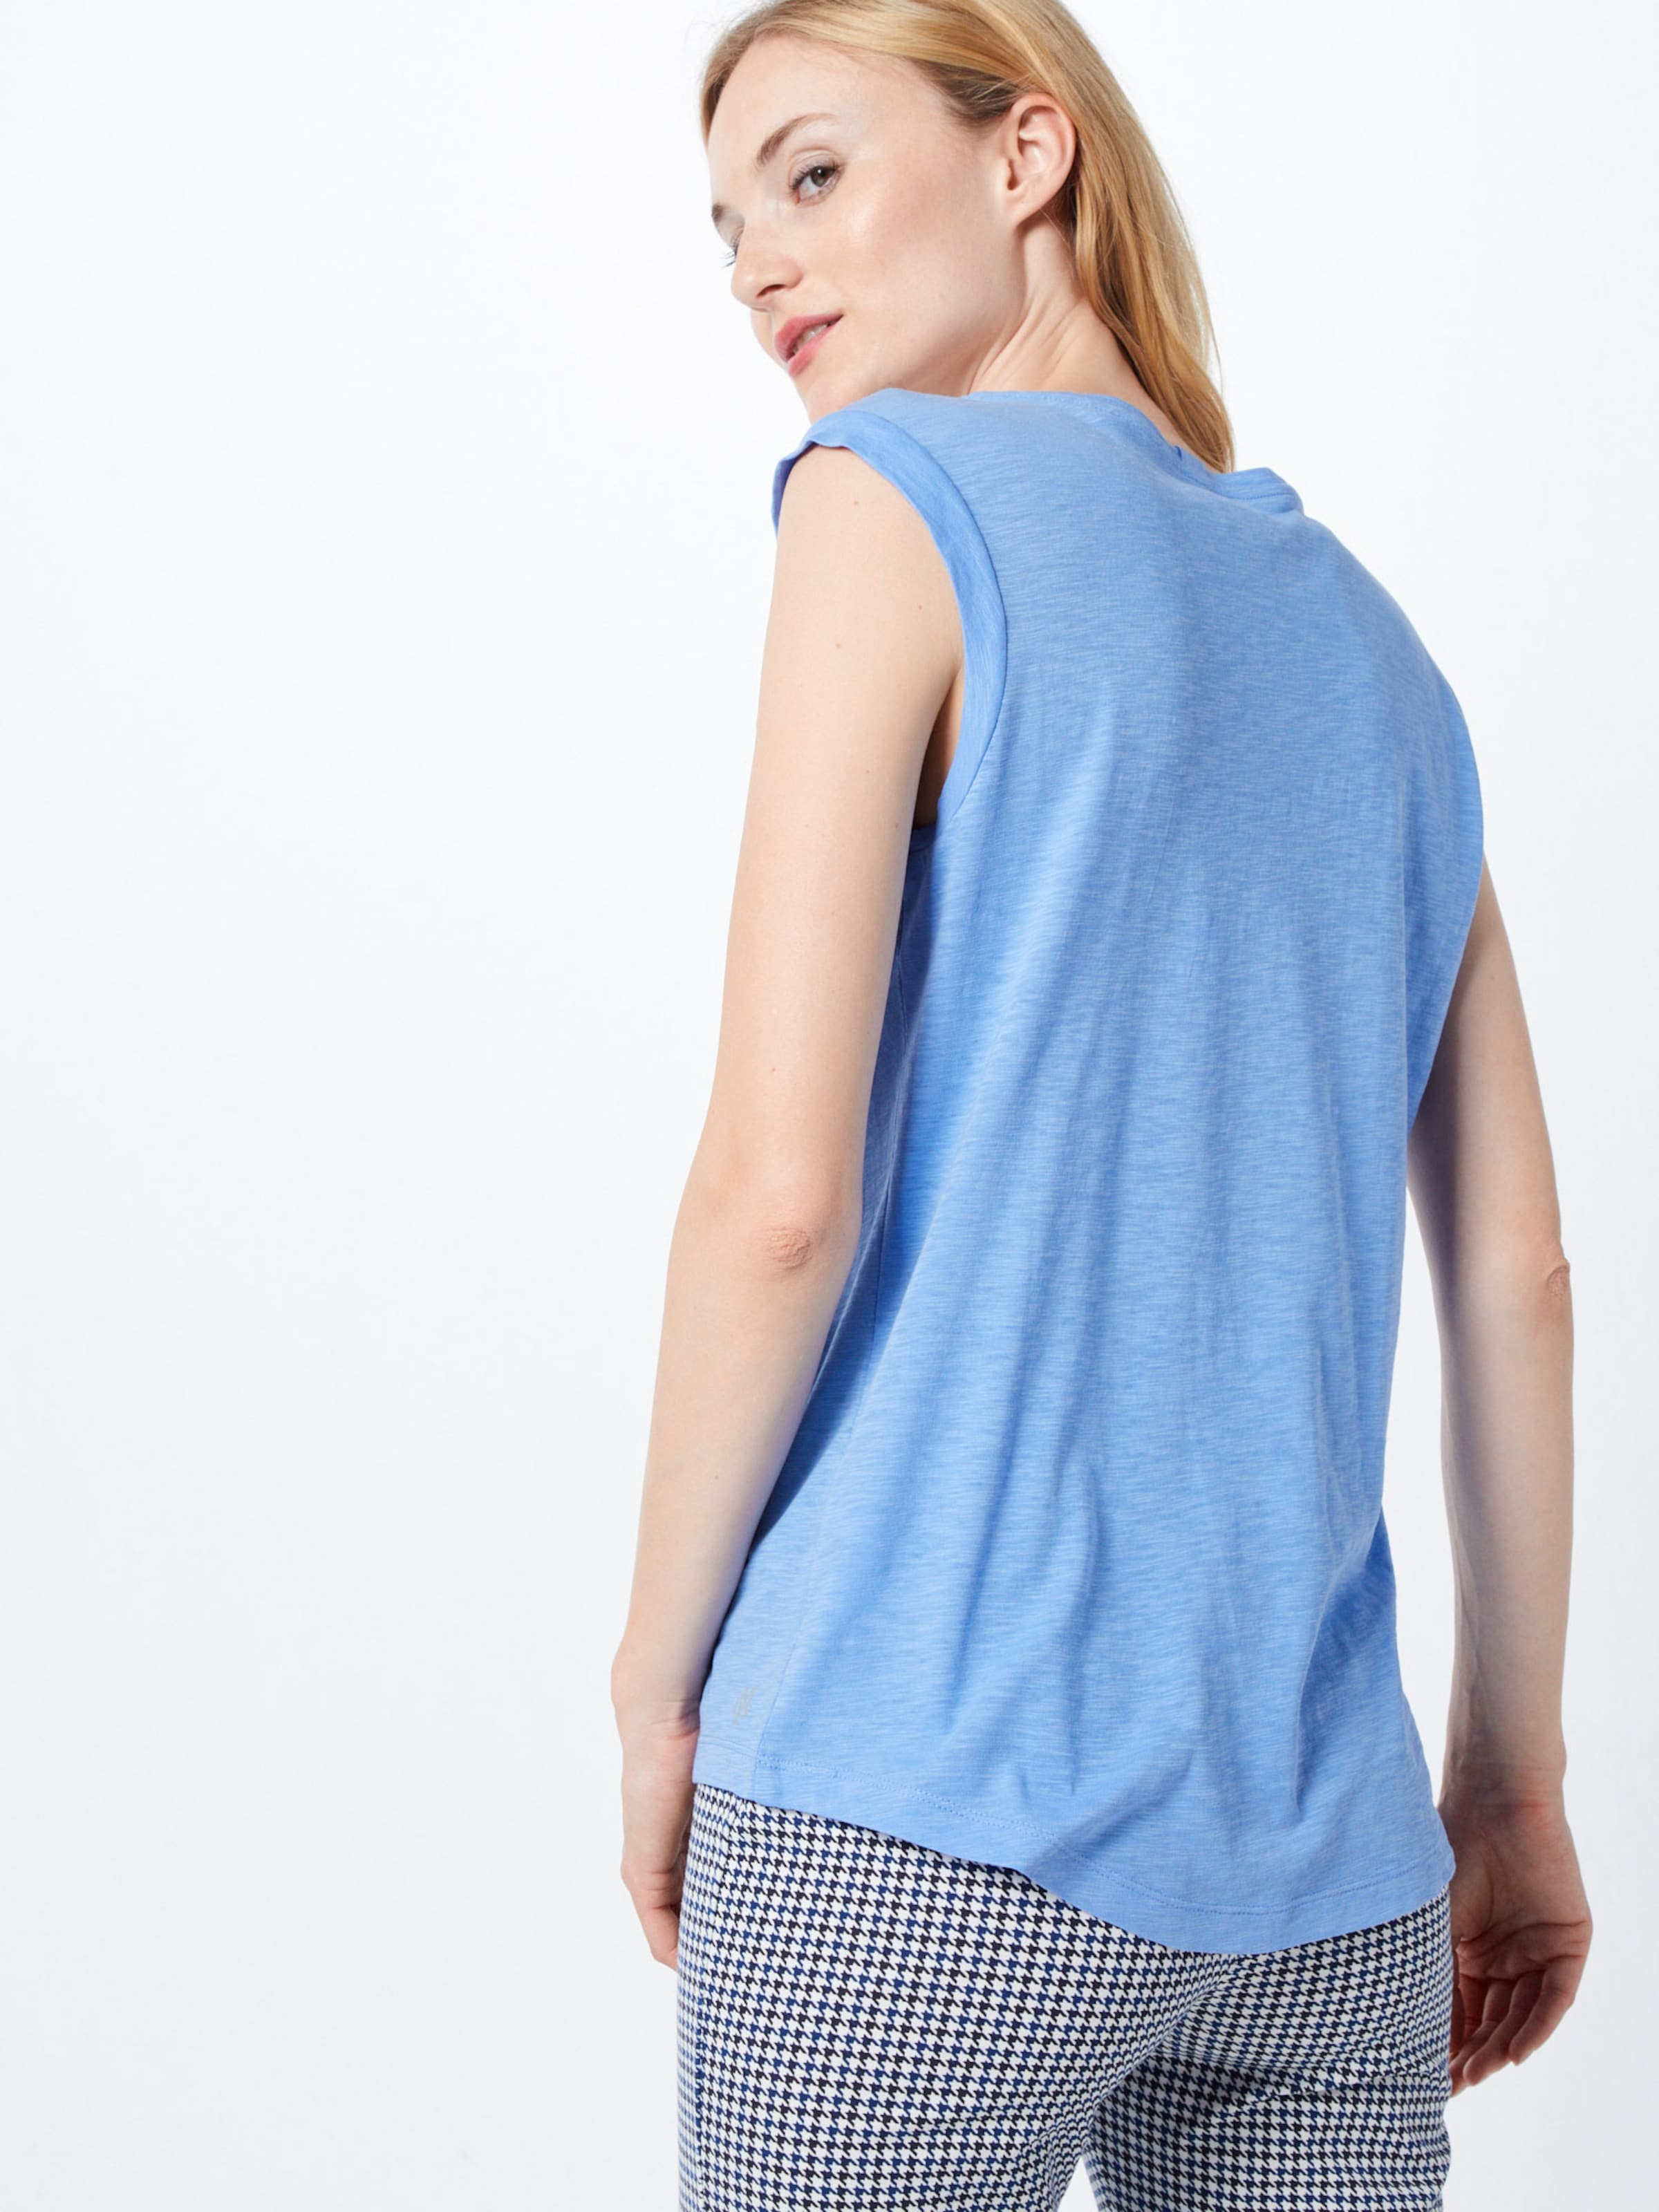 Blau Top Top O'polo In In Blau Marc O'polo Marc Marc ED2IW9H